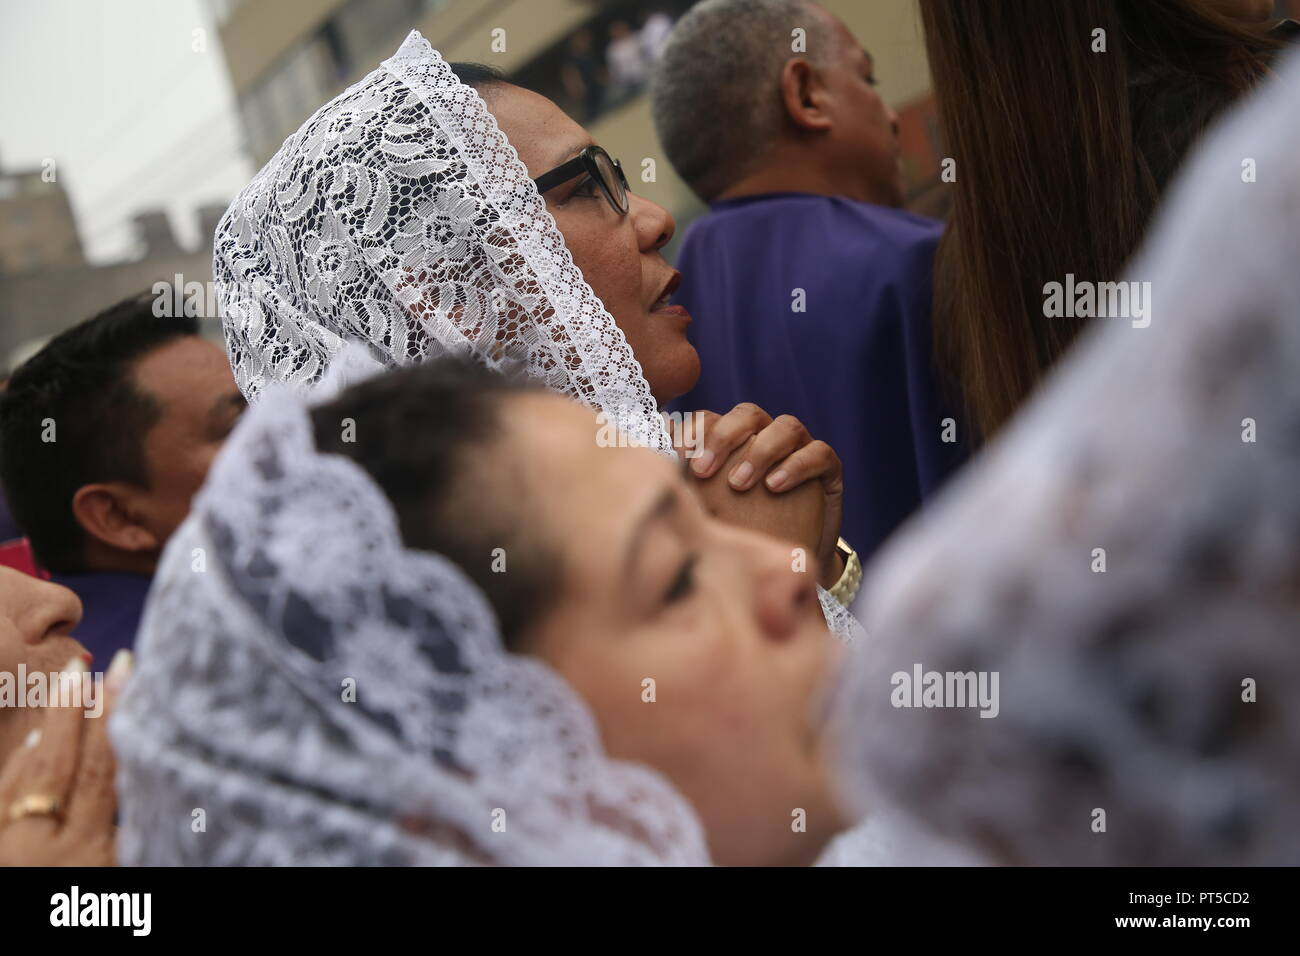 Lima, Peru. 06th Oct, 2018. A woman prays during a procession in honour of the 'Senor de los Milagros' (Lord of Miracles). 'Senor de los Milagros' is a Catholic festival that is celebrated every year in Lima. Credit: Geraldo Caso/dpa/Alamy Live News - Stock Image